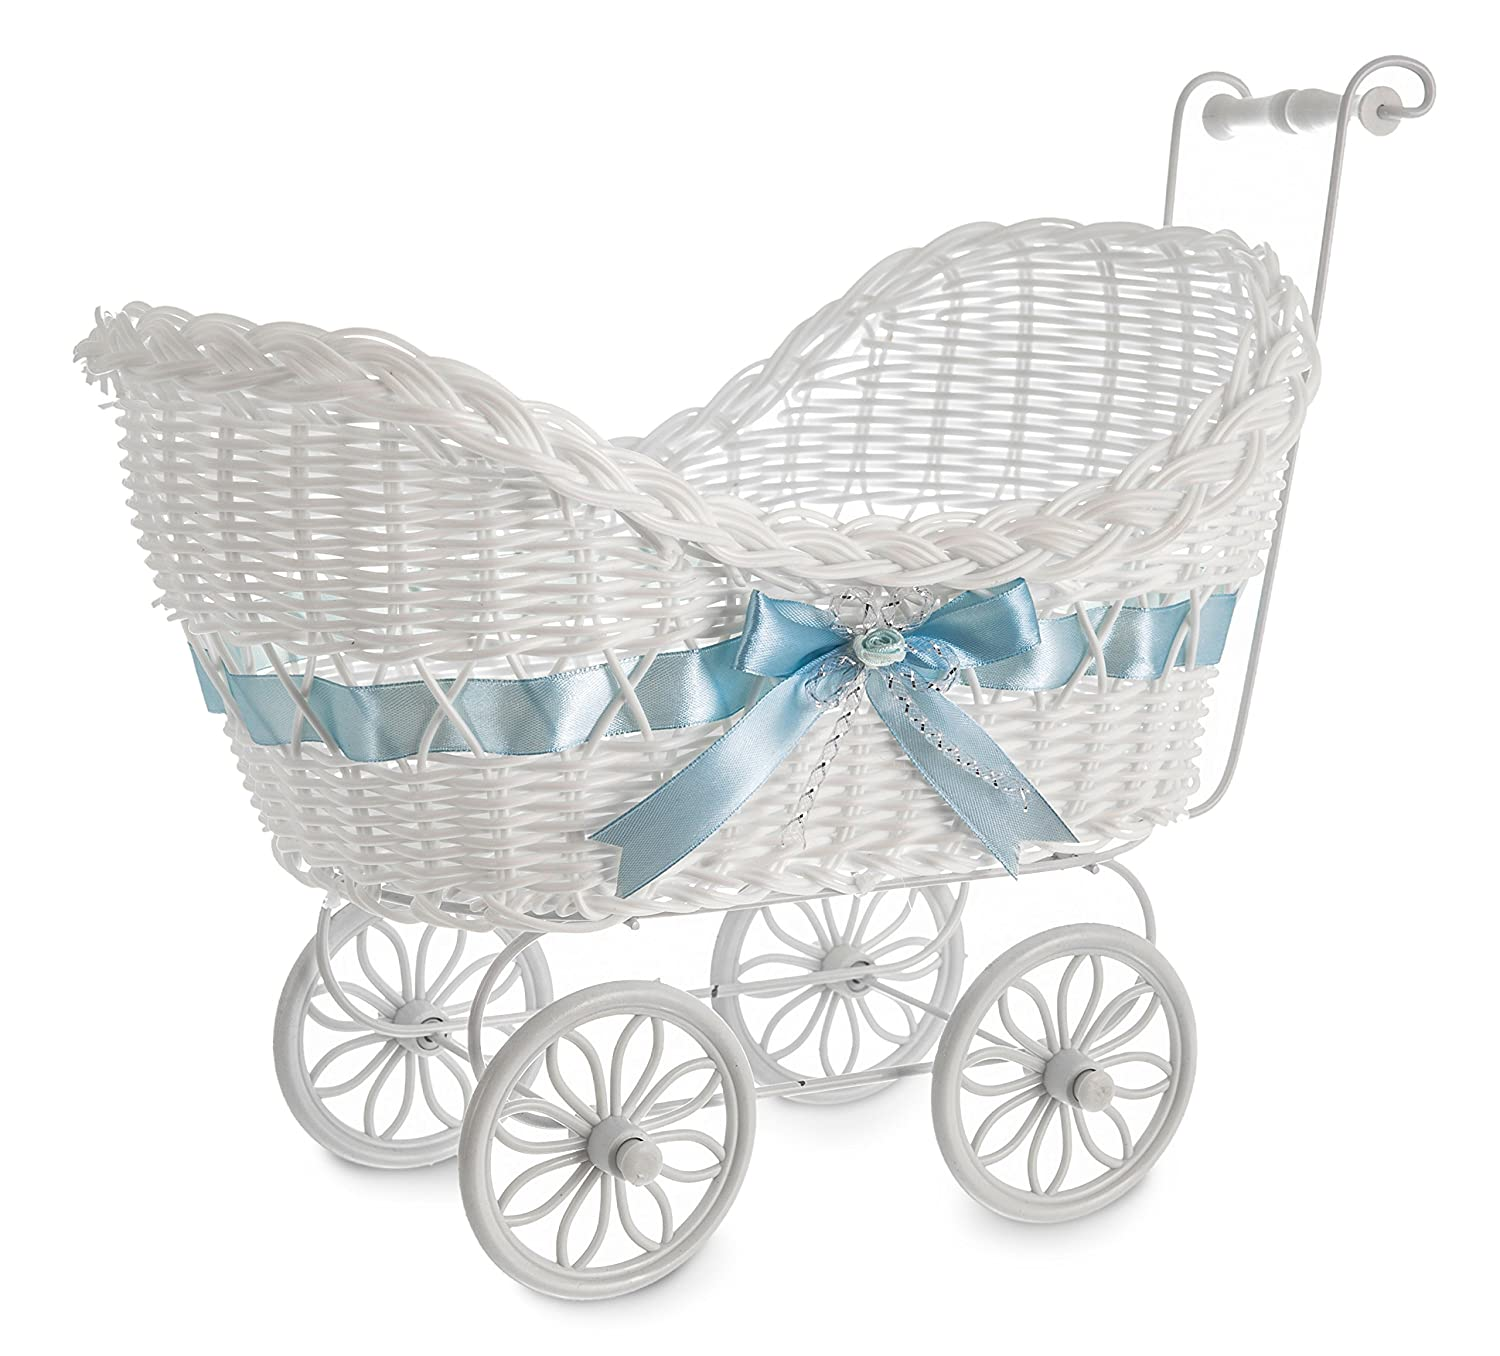 LIVIVO ® White Baby Pram Wicker Hamper Basket with Handles, Wheels and Colourful Satin Ribbon Bow - Perfect for Baby Showers or Newborn Baby Gifts - Beautiful and Stylish Multipurpose Baskets can also be used for Storage or Decoration in Any Room in the H